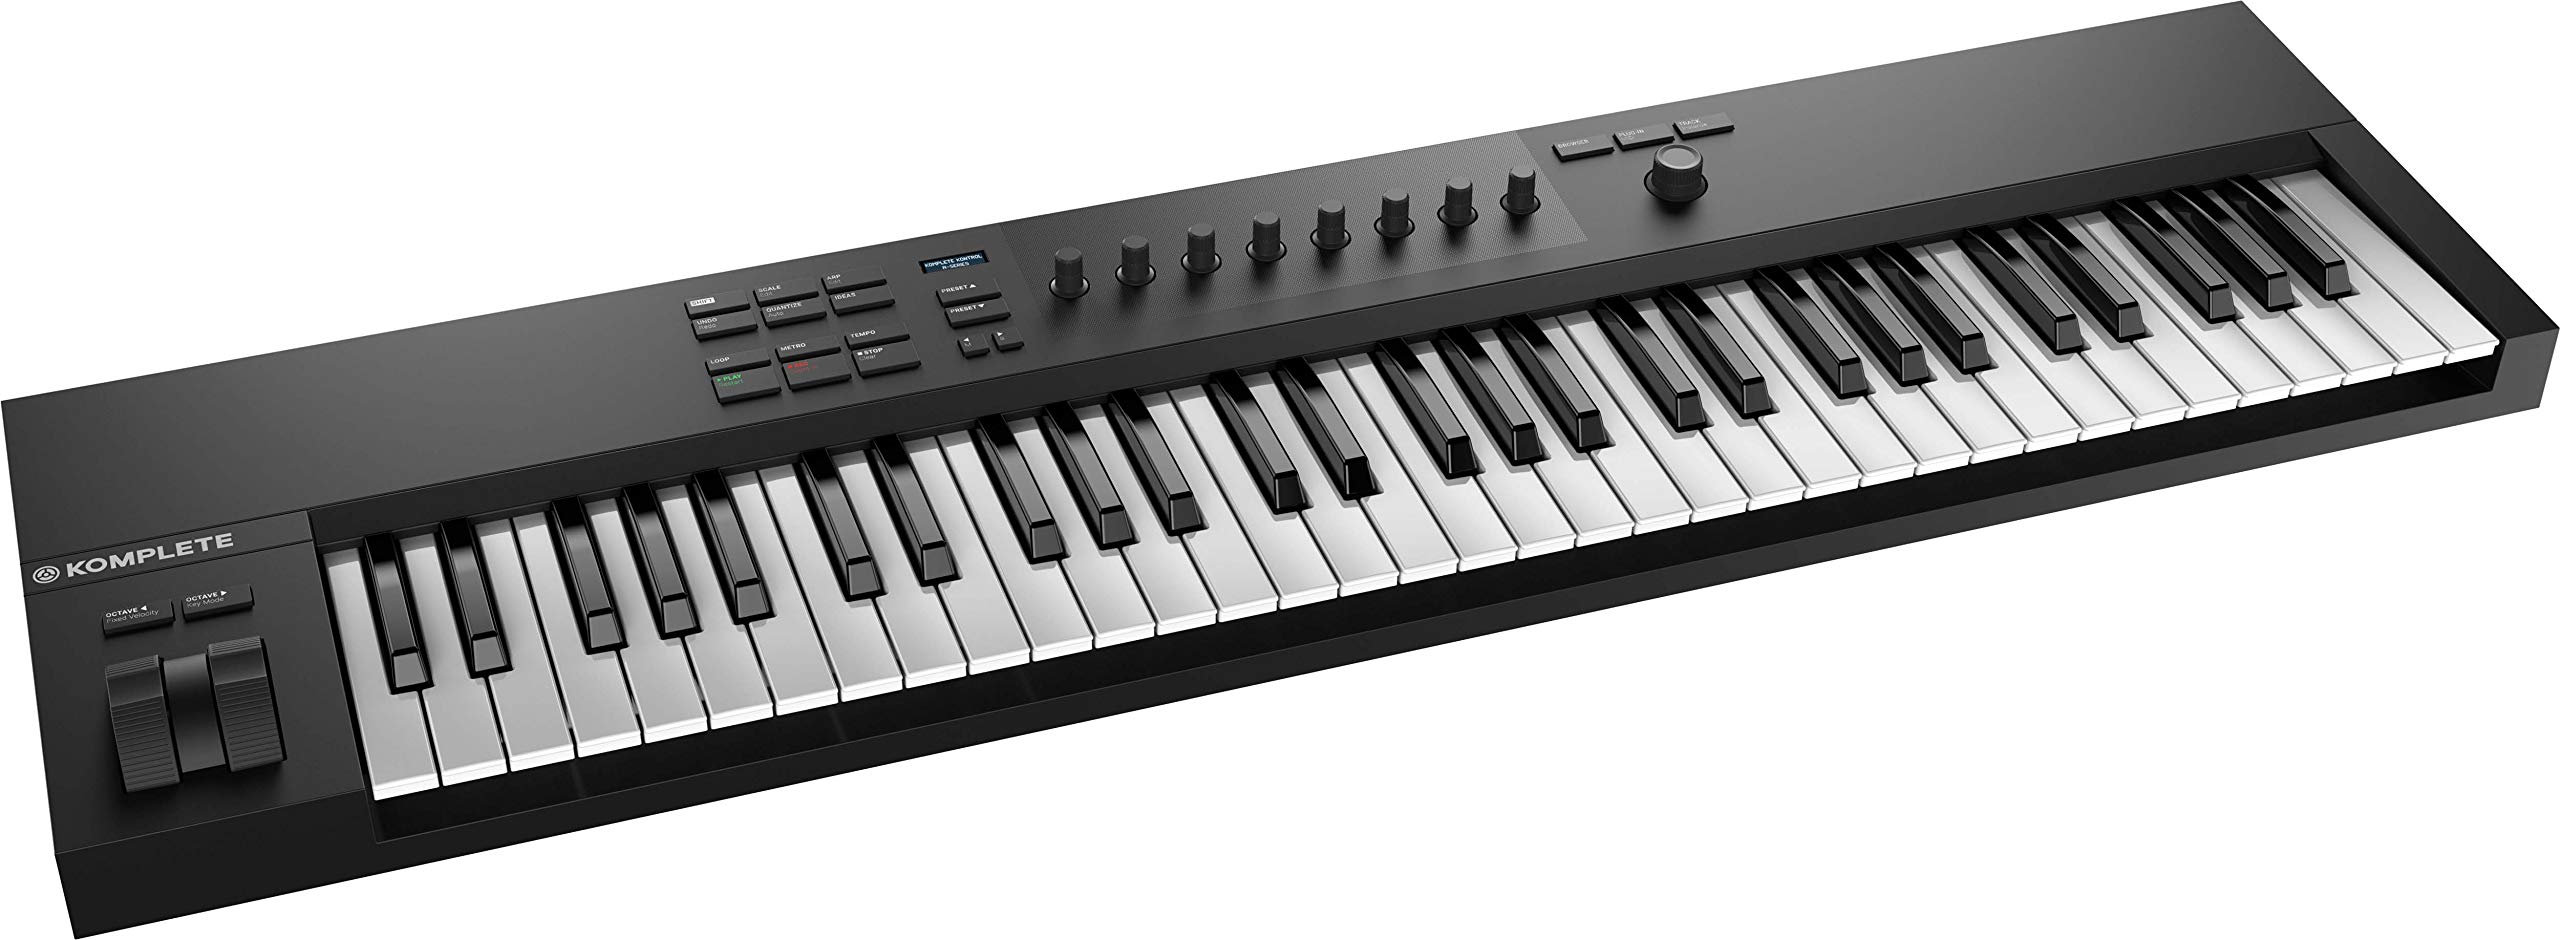 Native Instruments Komplete Kontrol A61 Controller Keyboard by Native Instruments (Image #1)